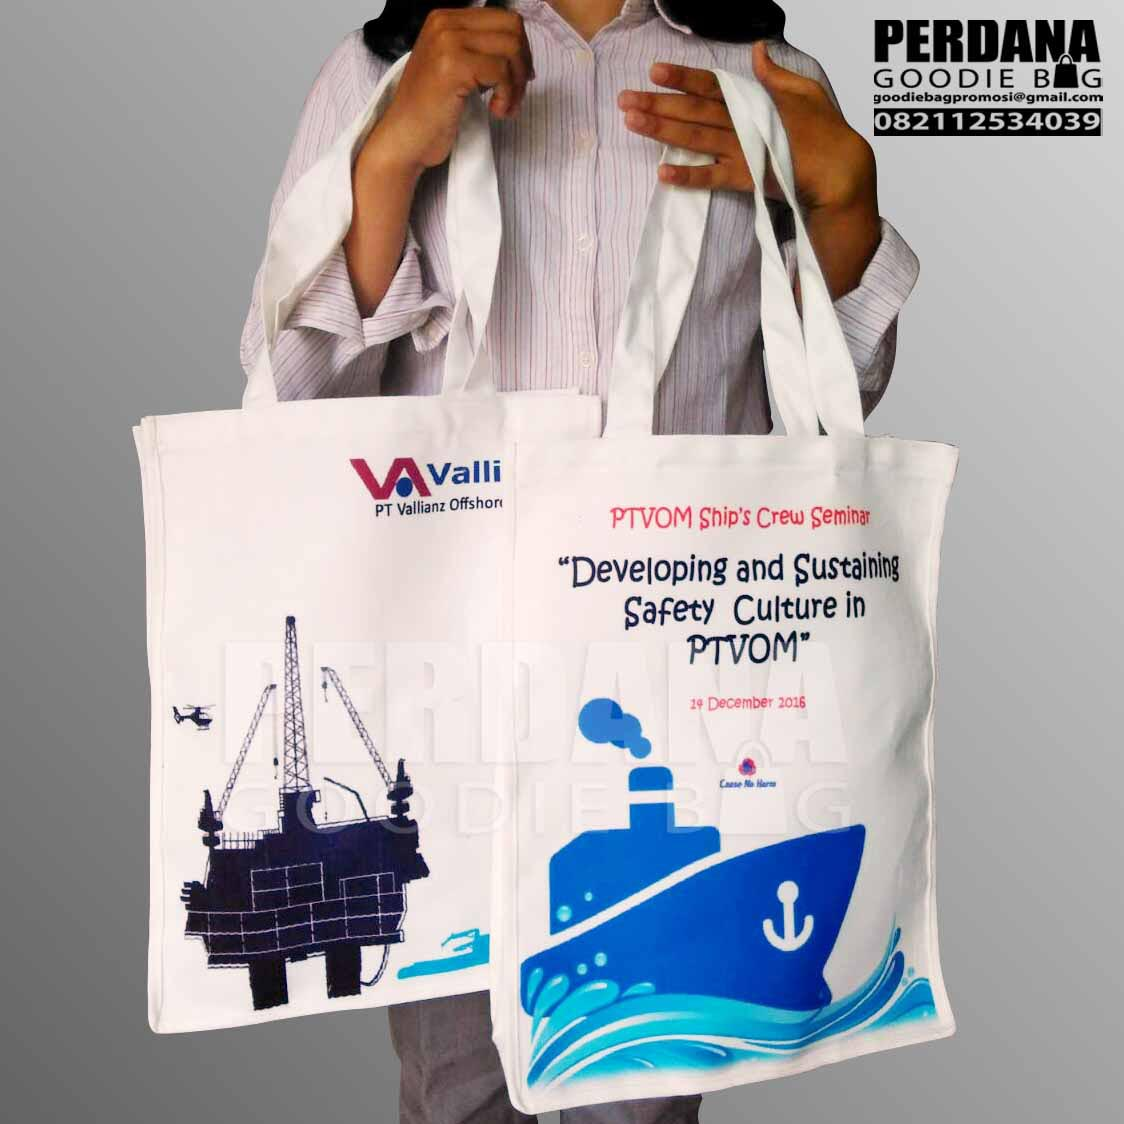 tas-bahan-kanvas-valianz-by-perdana